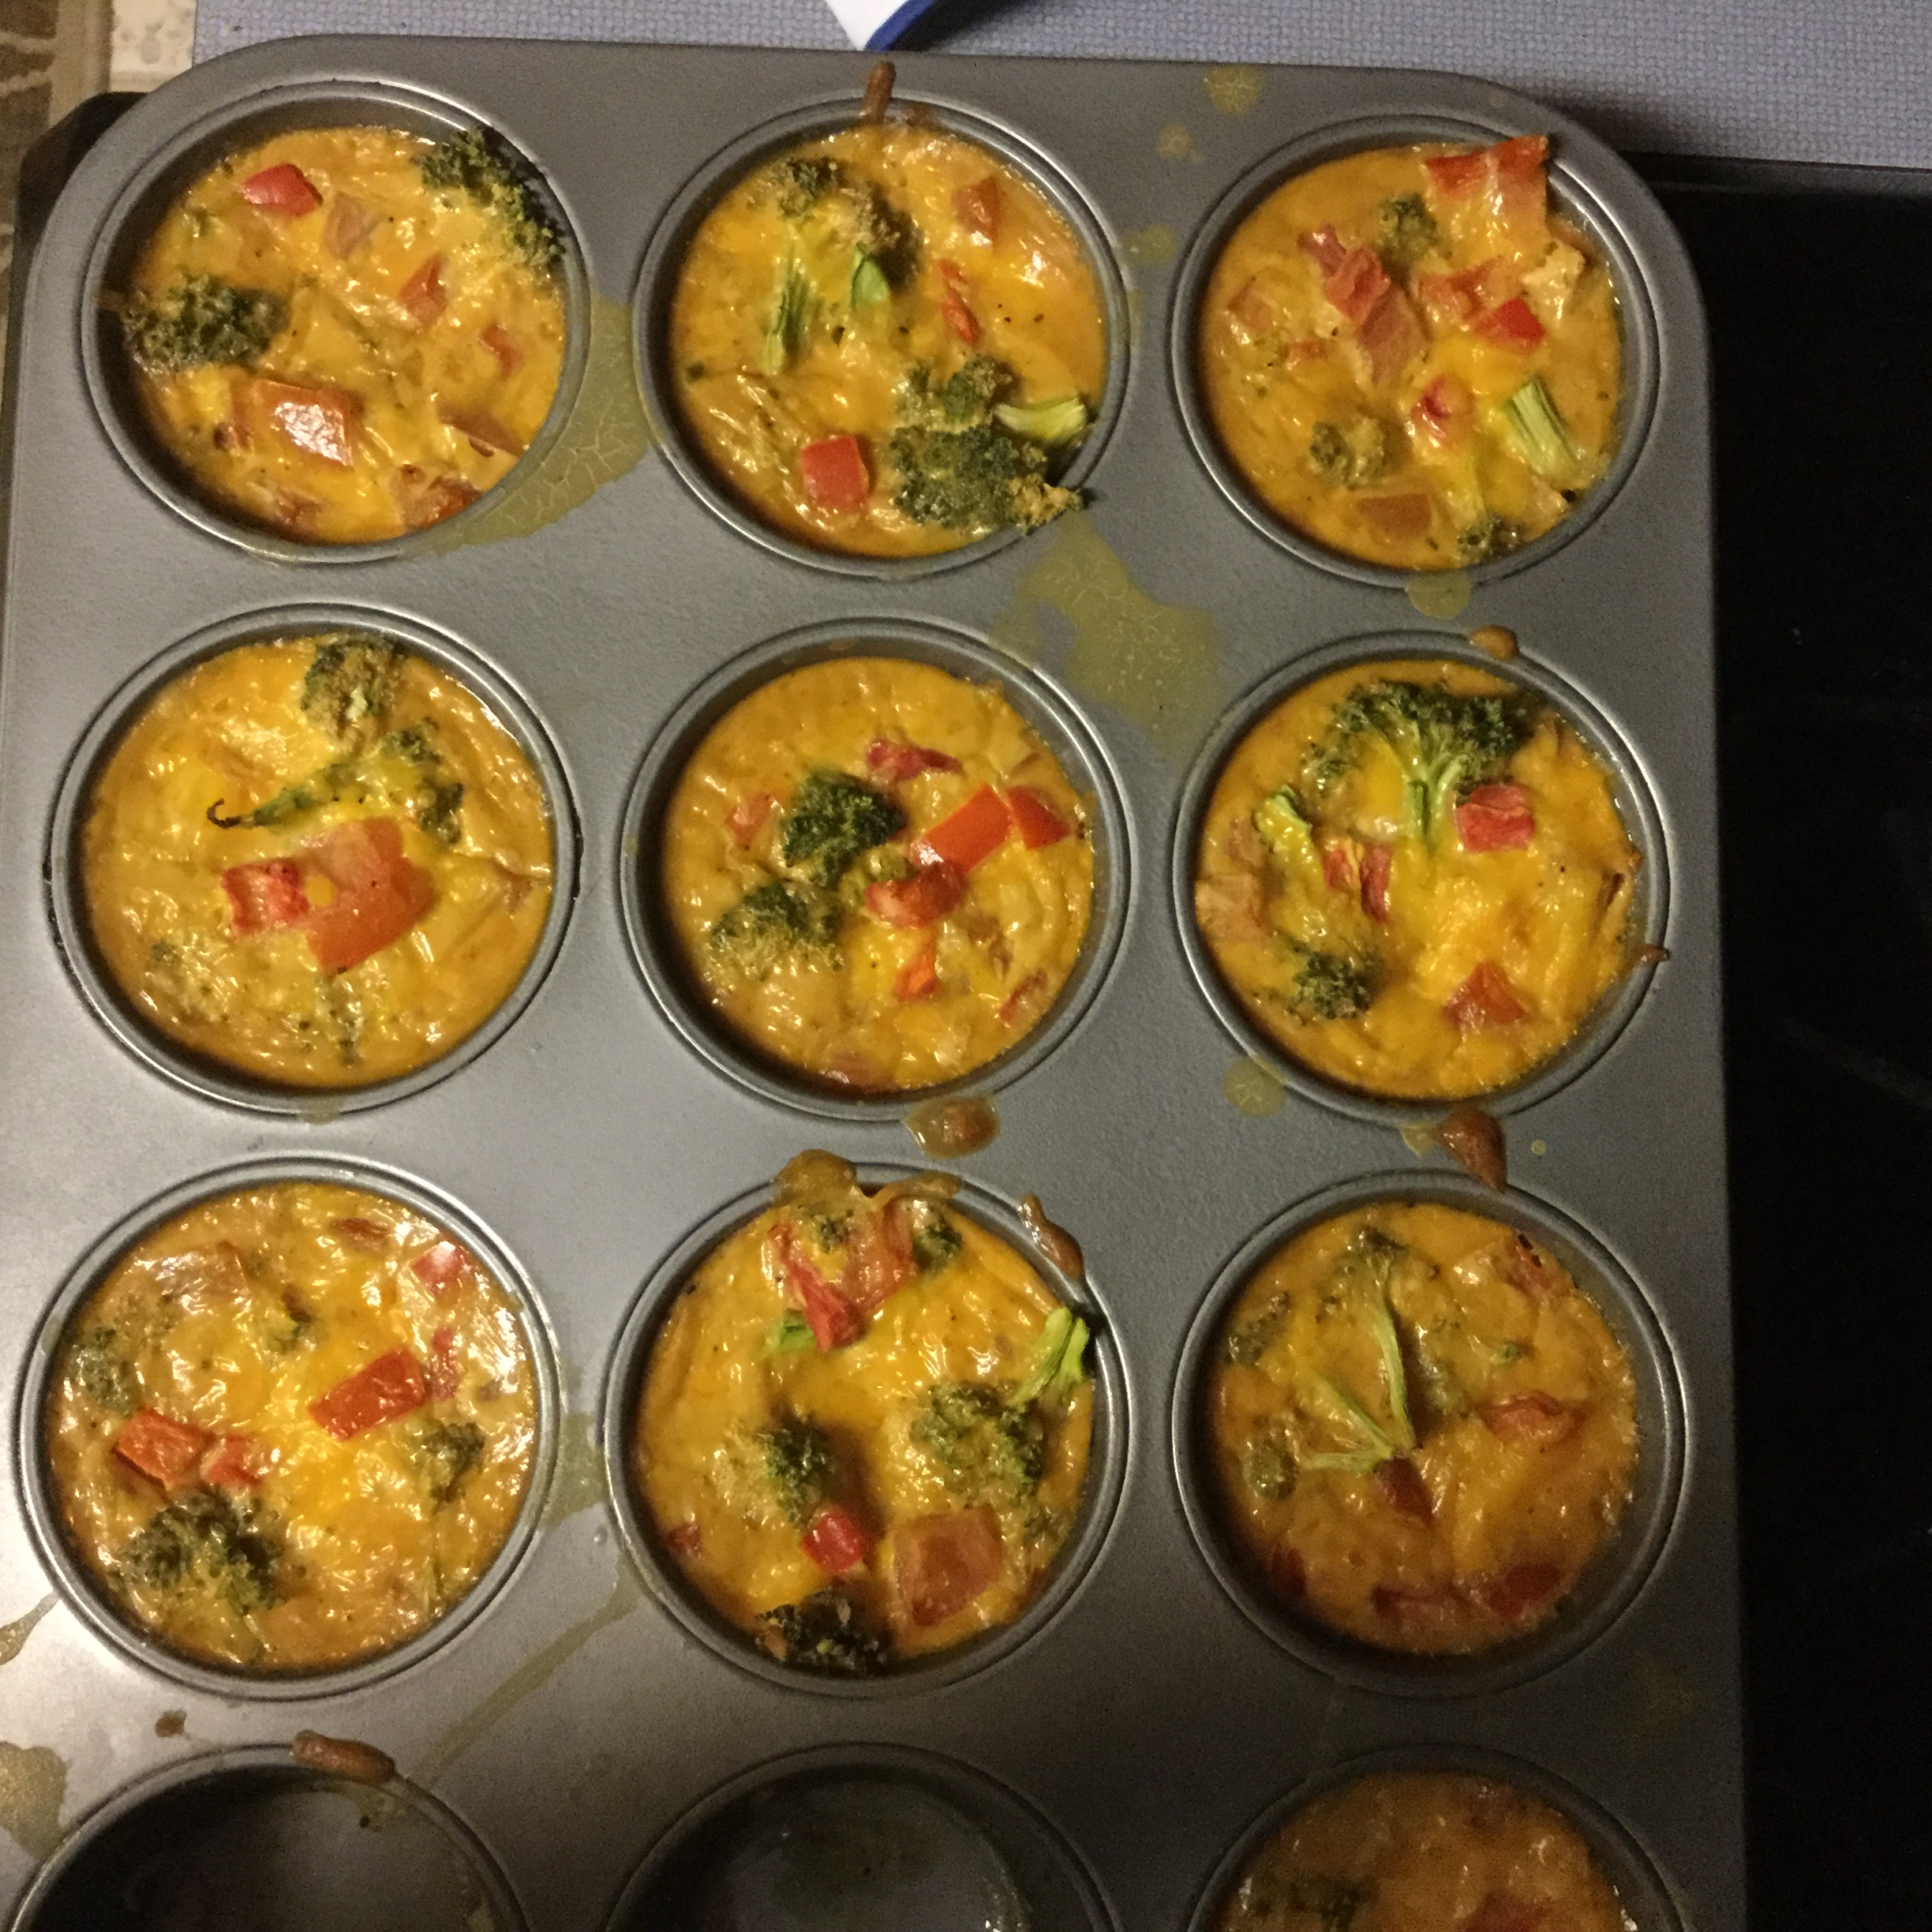 Crustless Broccoli and Cheddar Mini Quiches